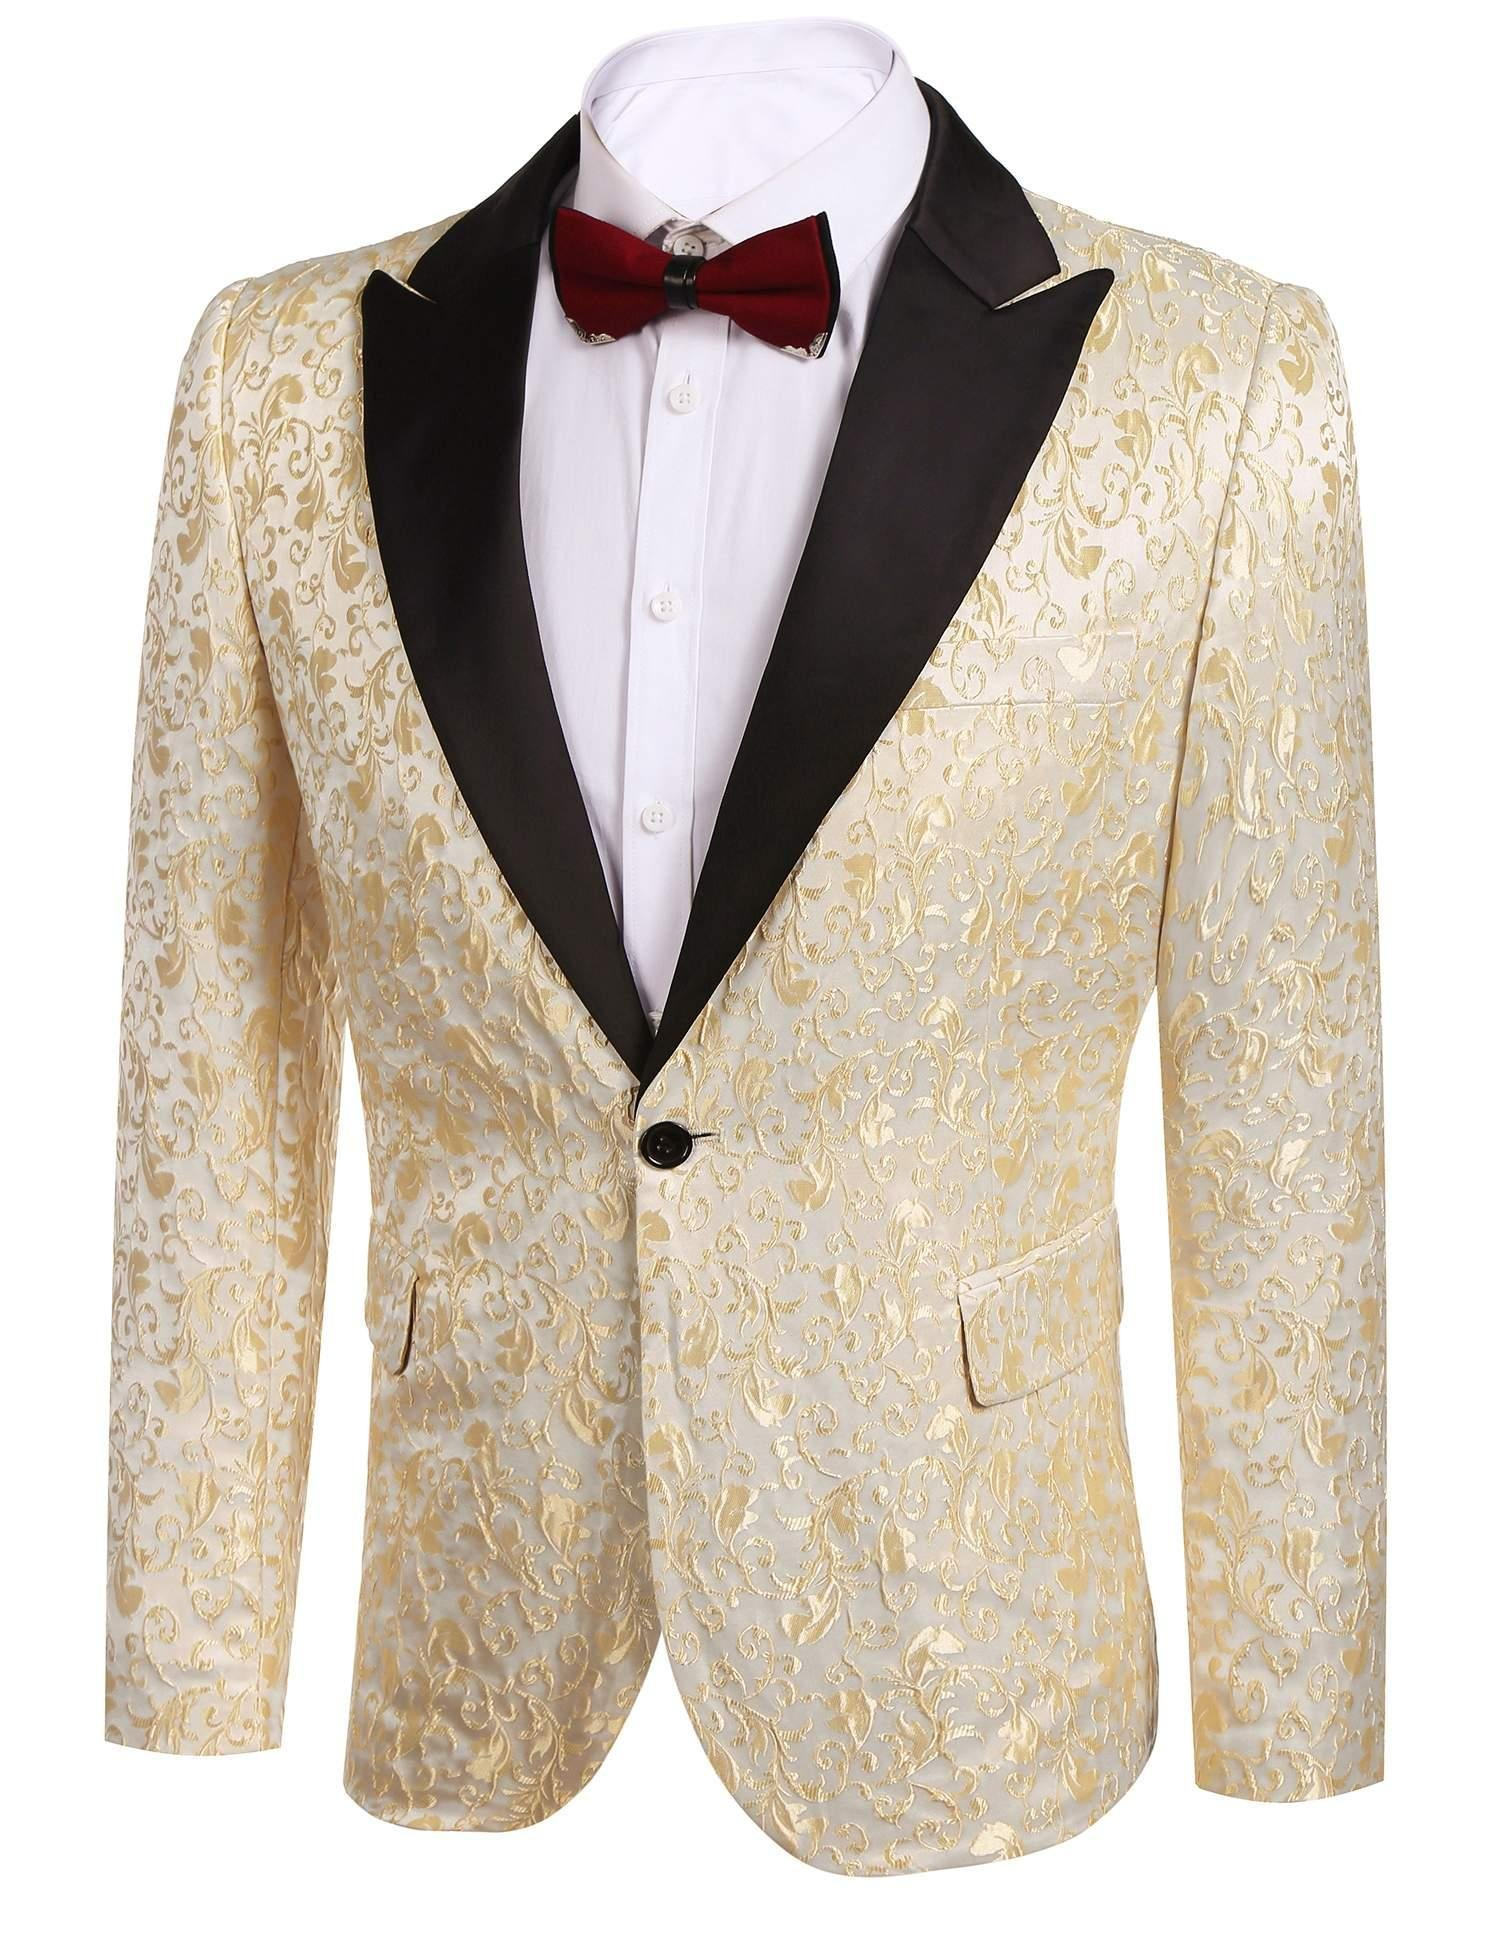 Donet Men's Floral Party Dress Suit Notched Lapel Stylish Dinner Jacket Wedding Blazer Prom Tuxedo Gold Large